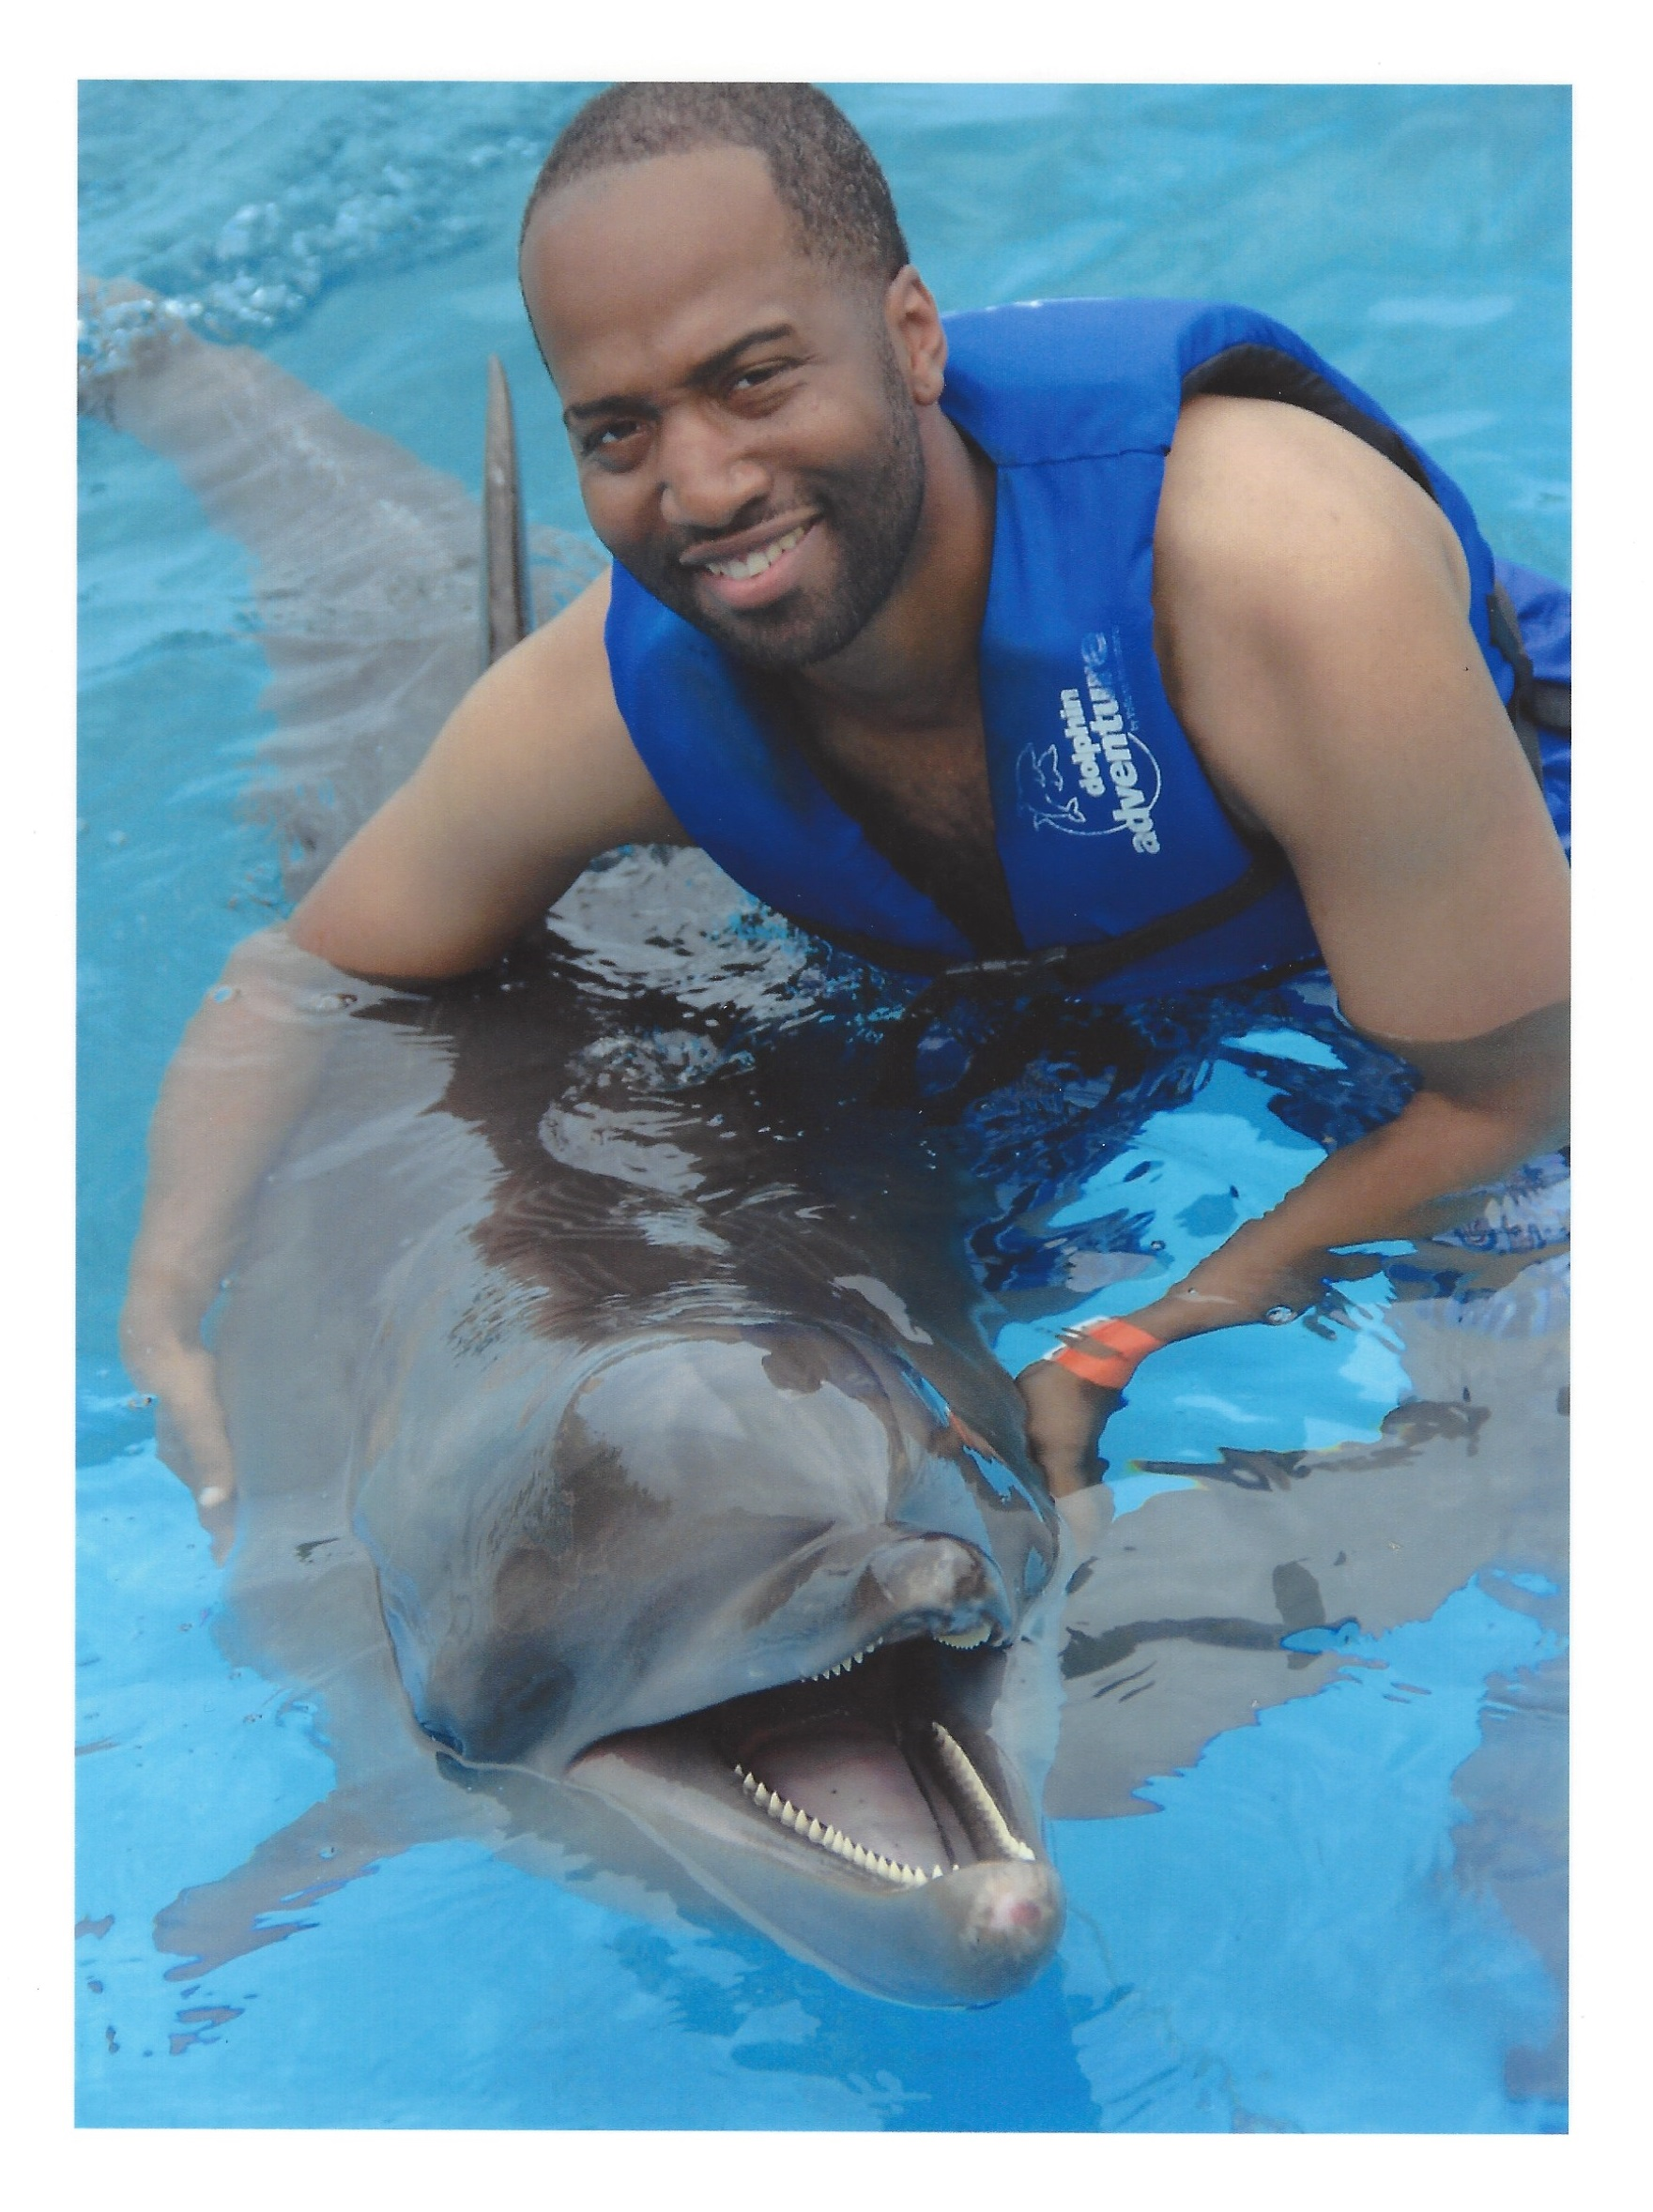 Anthony swimming with dolphins